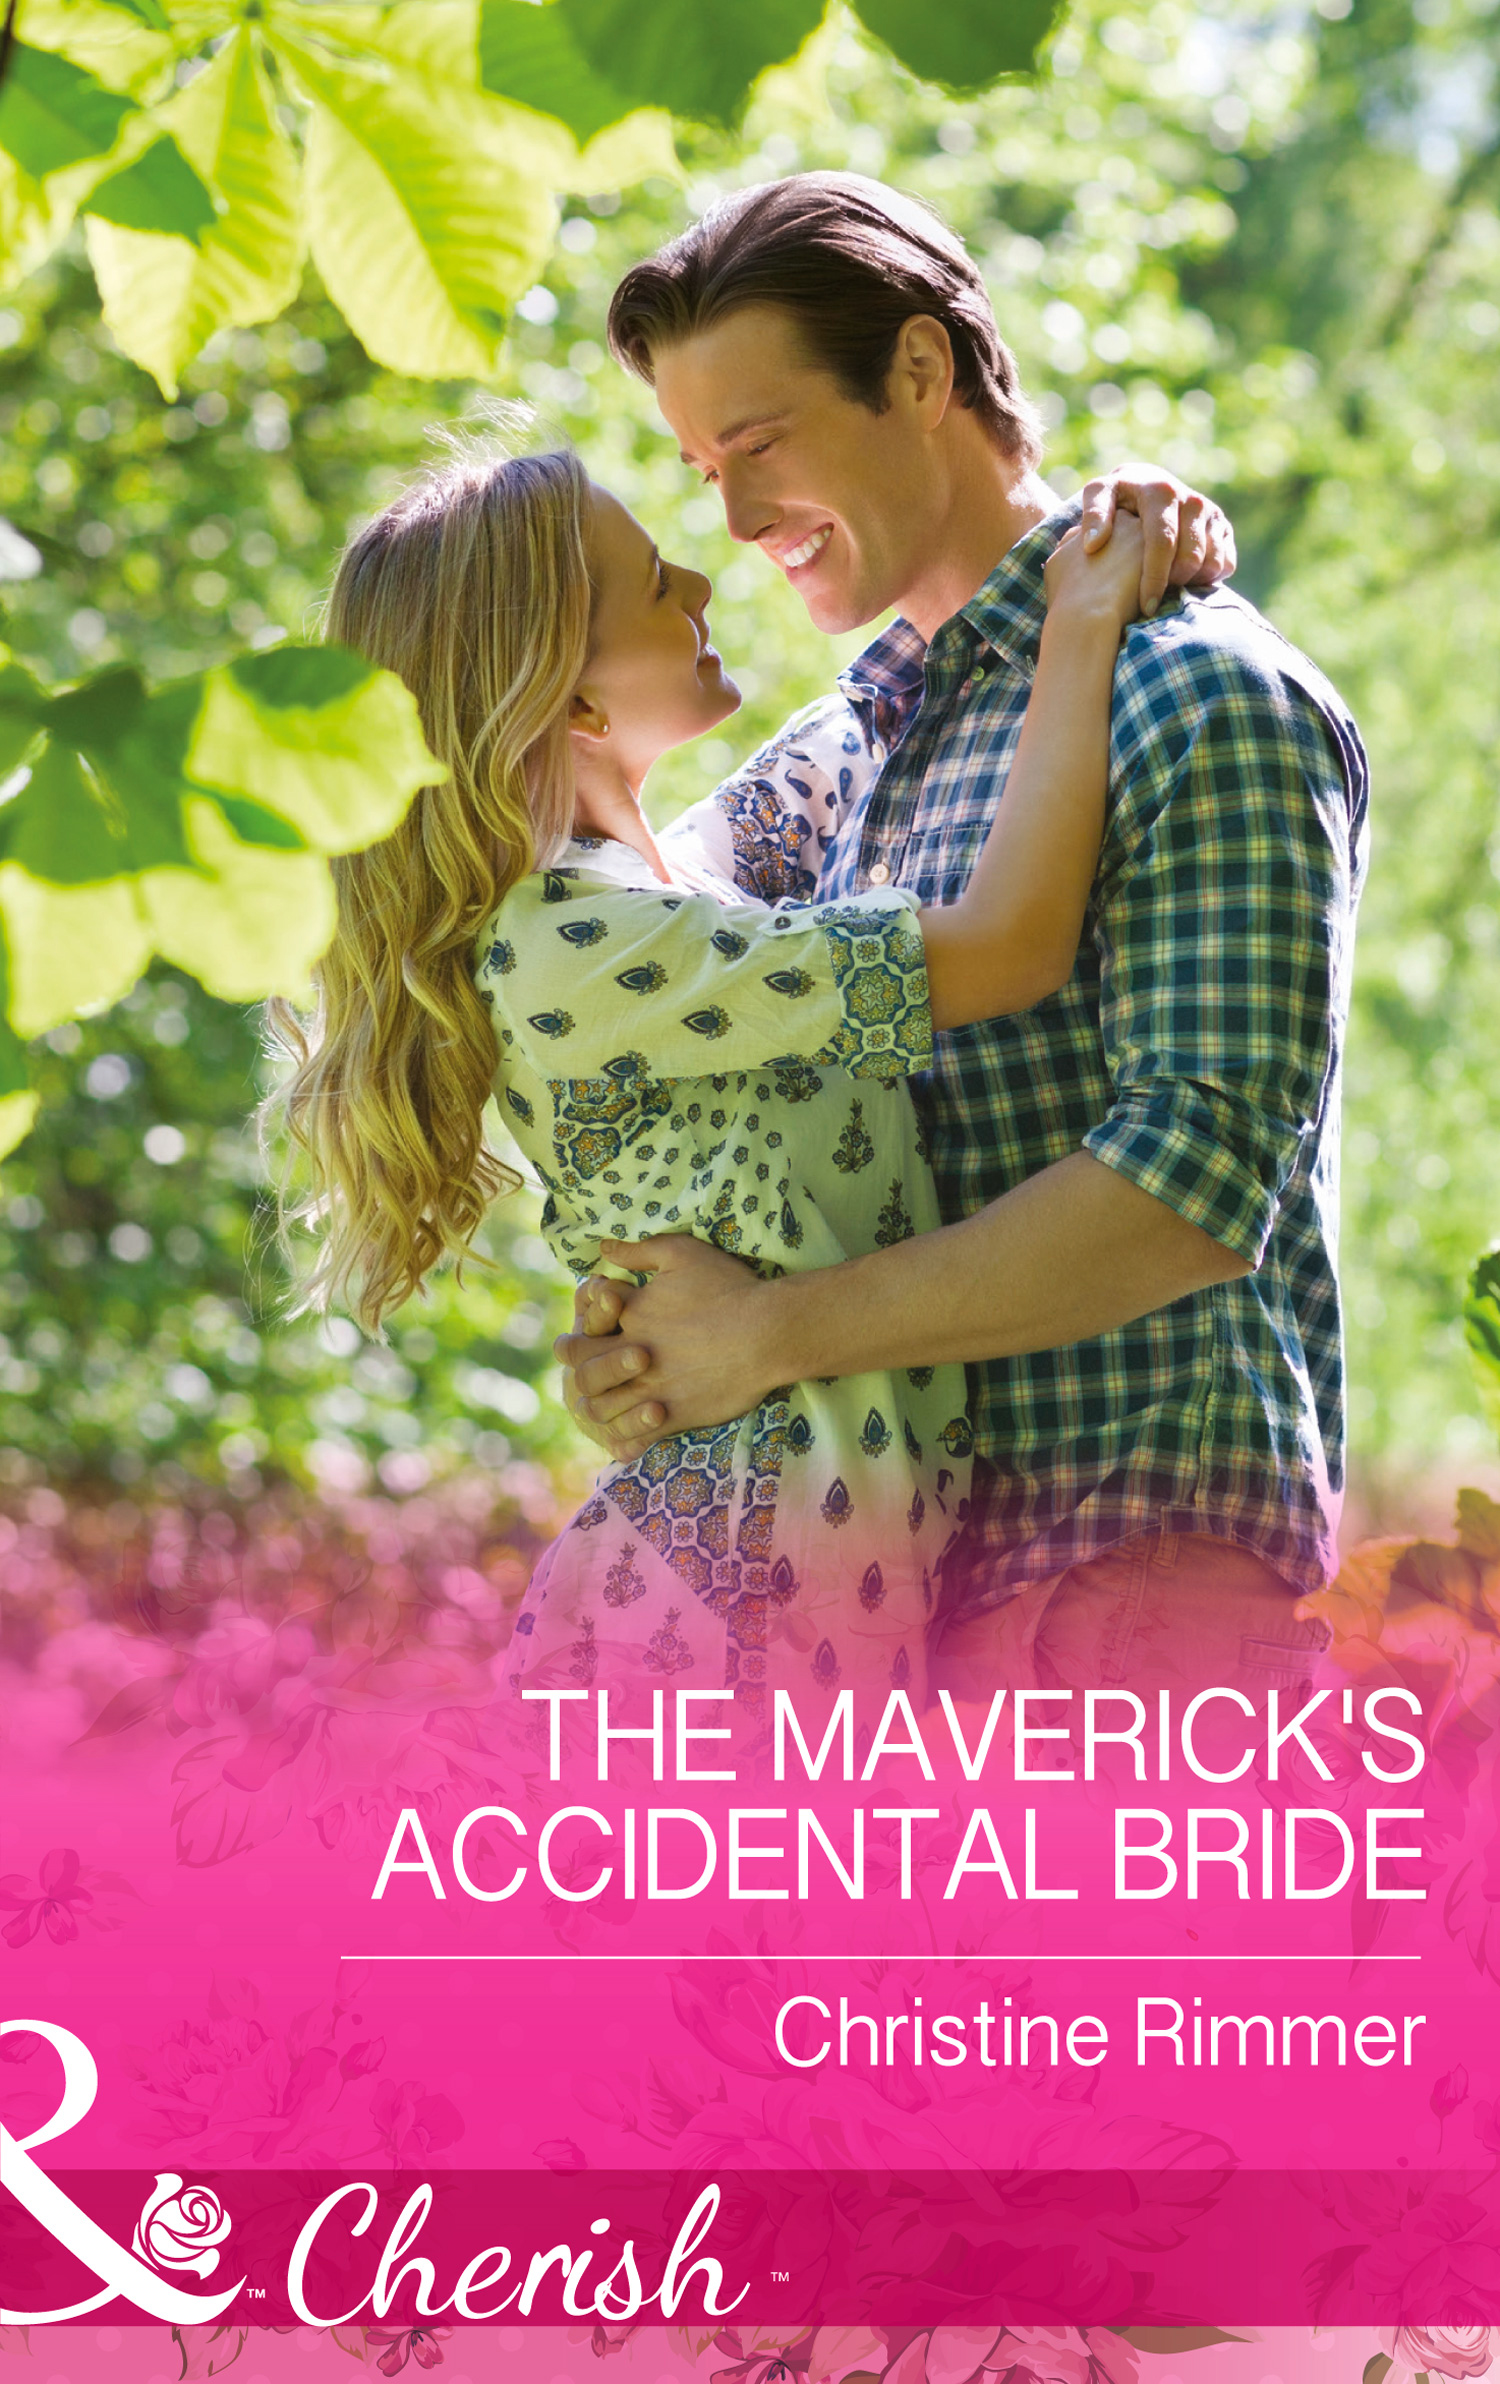 The Maverick's Accidental Bride